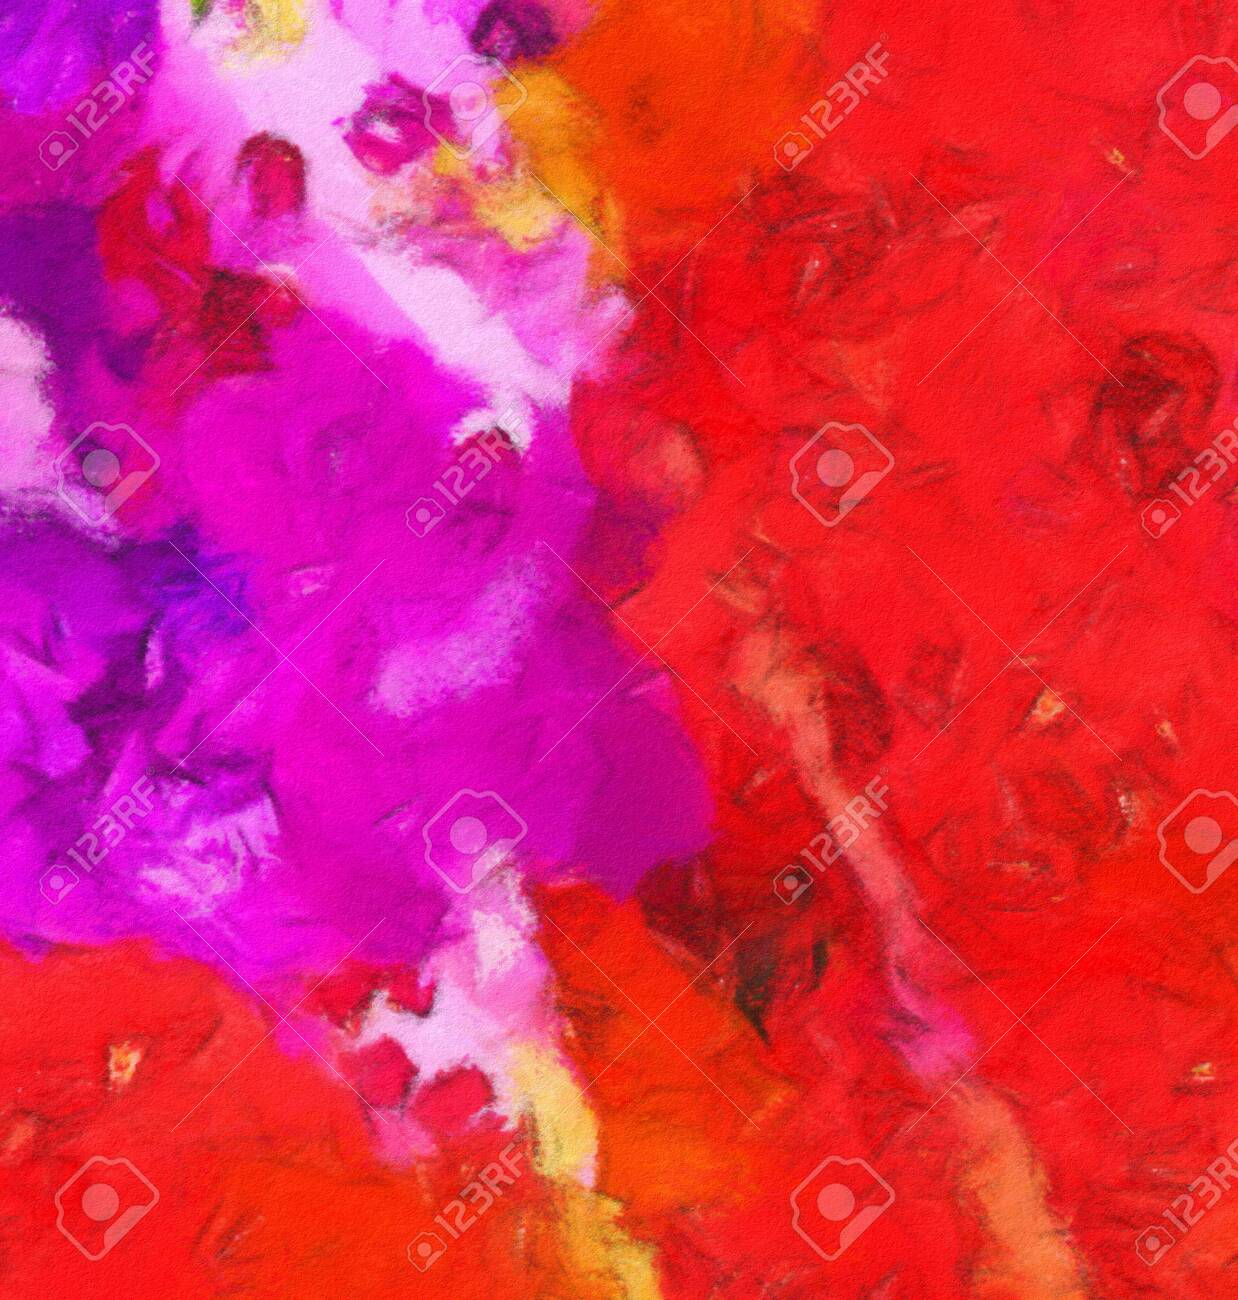 Large Watercolor Paint Strokes On Canvas Simple Modern Art Drawing Stock Photo Picture And Royalty Free Image Image 128390355